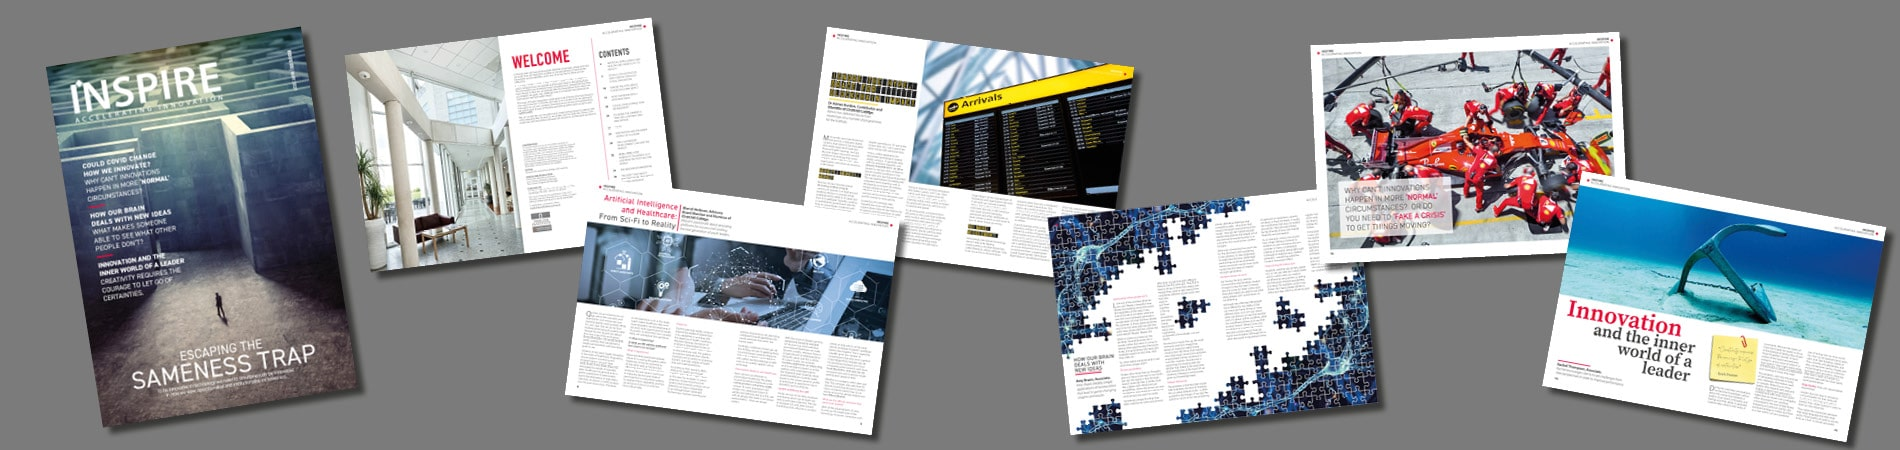 Picture of inspire issue 3